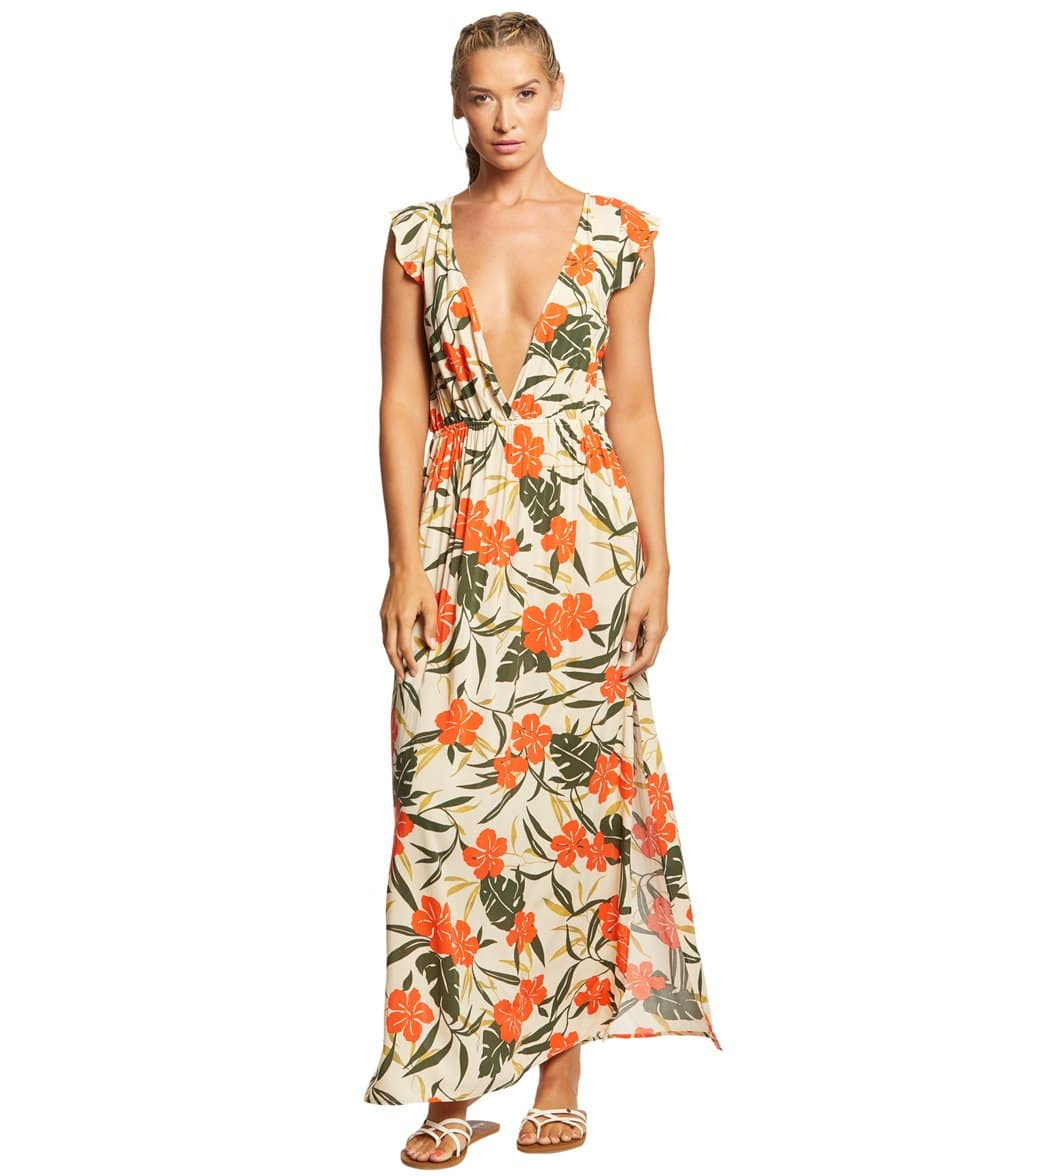 Vince Camuto Tropical Bloom Cover Up Dress at SwimOutlet.com - Free ...